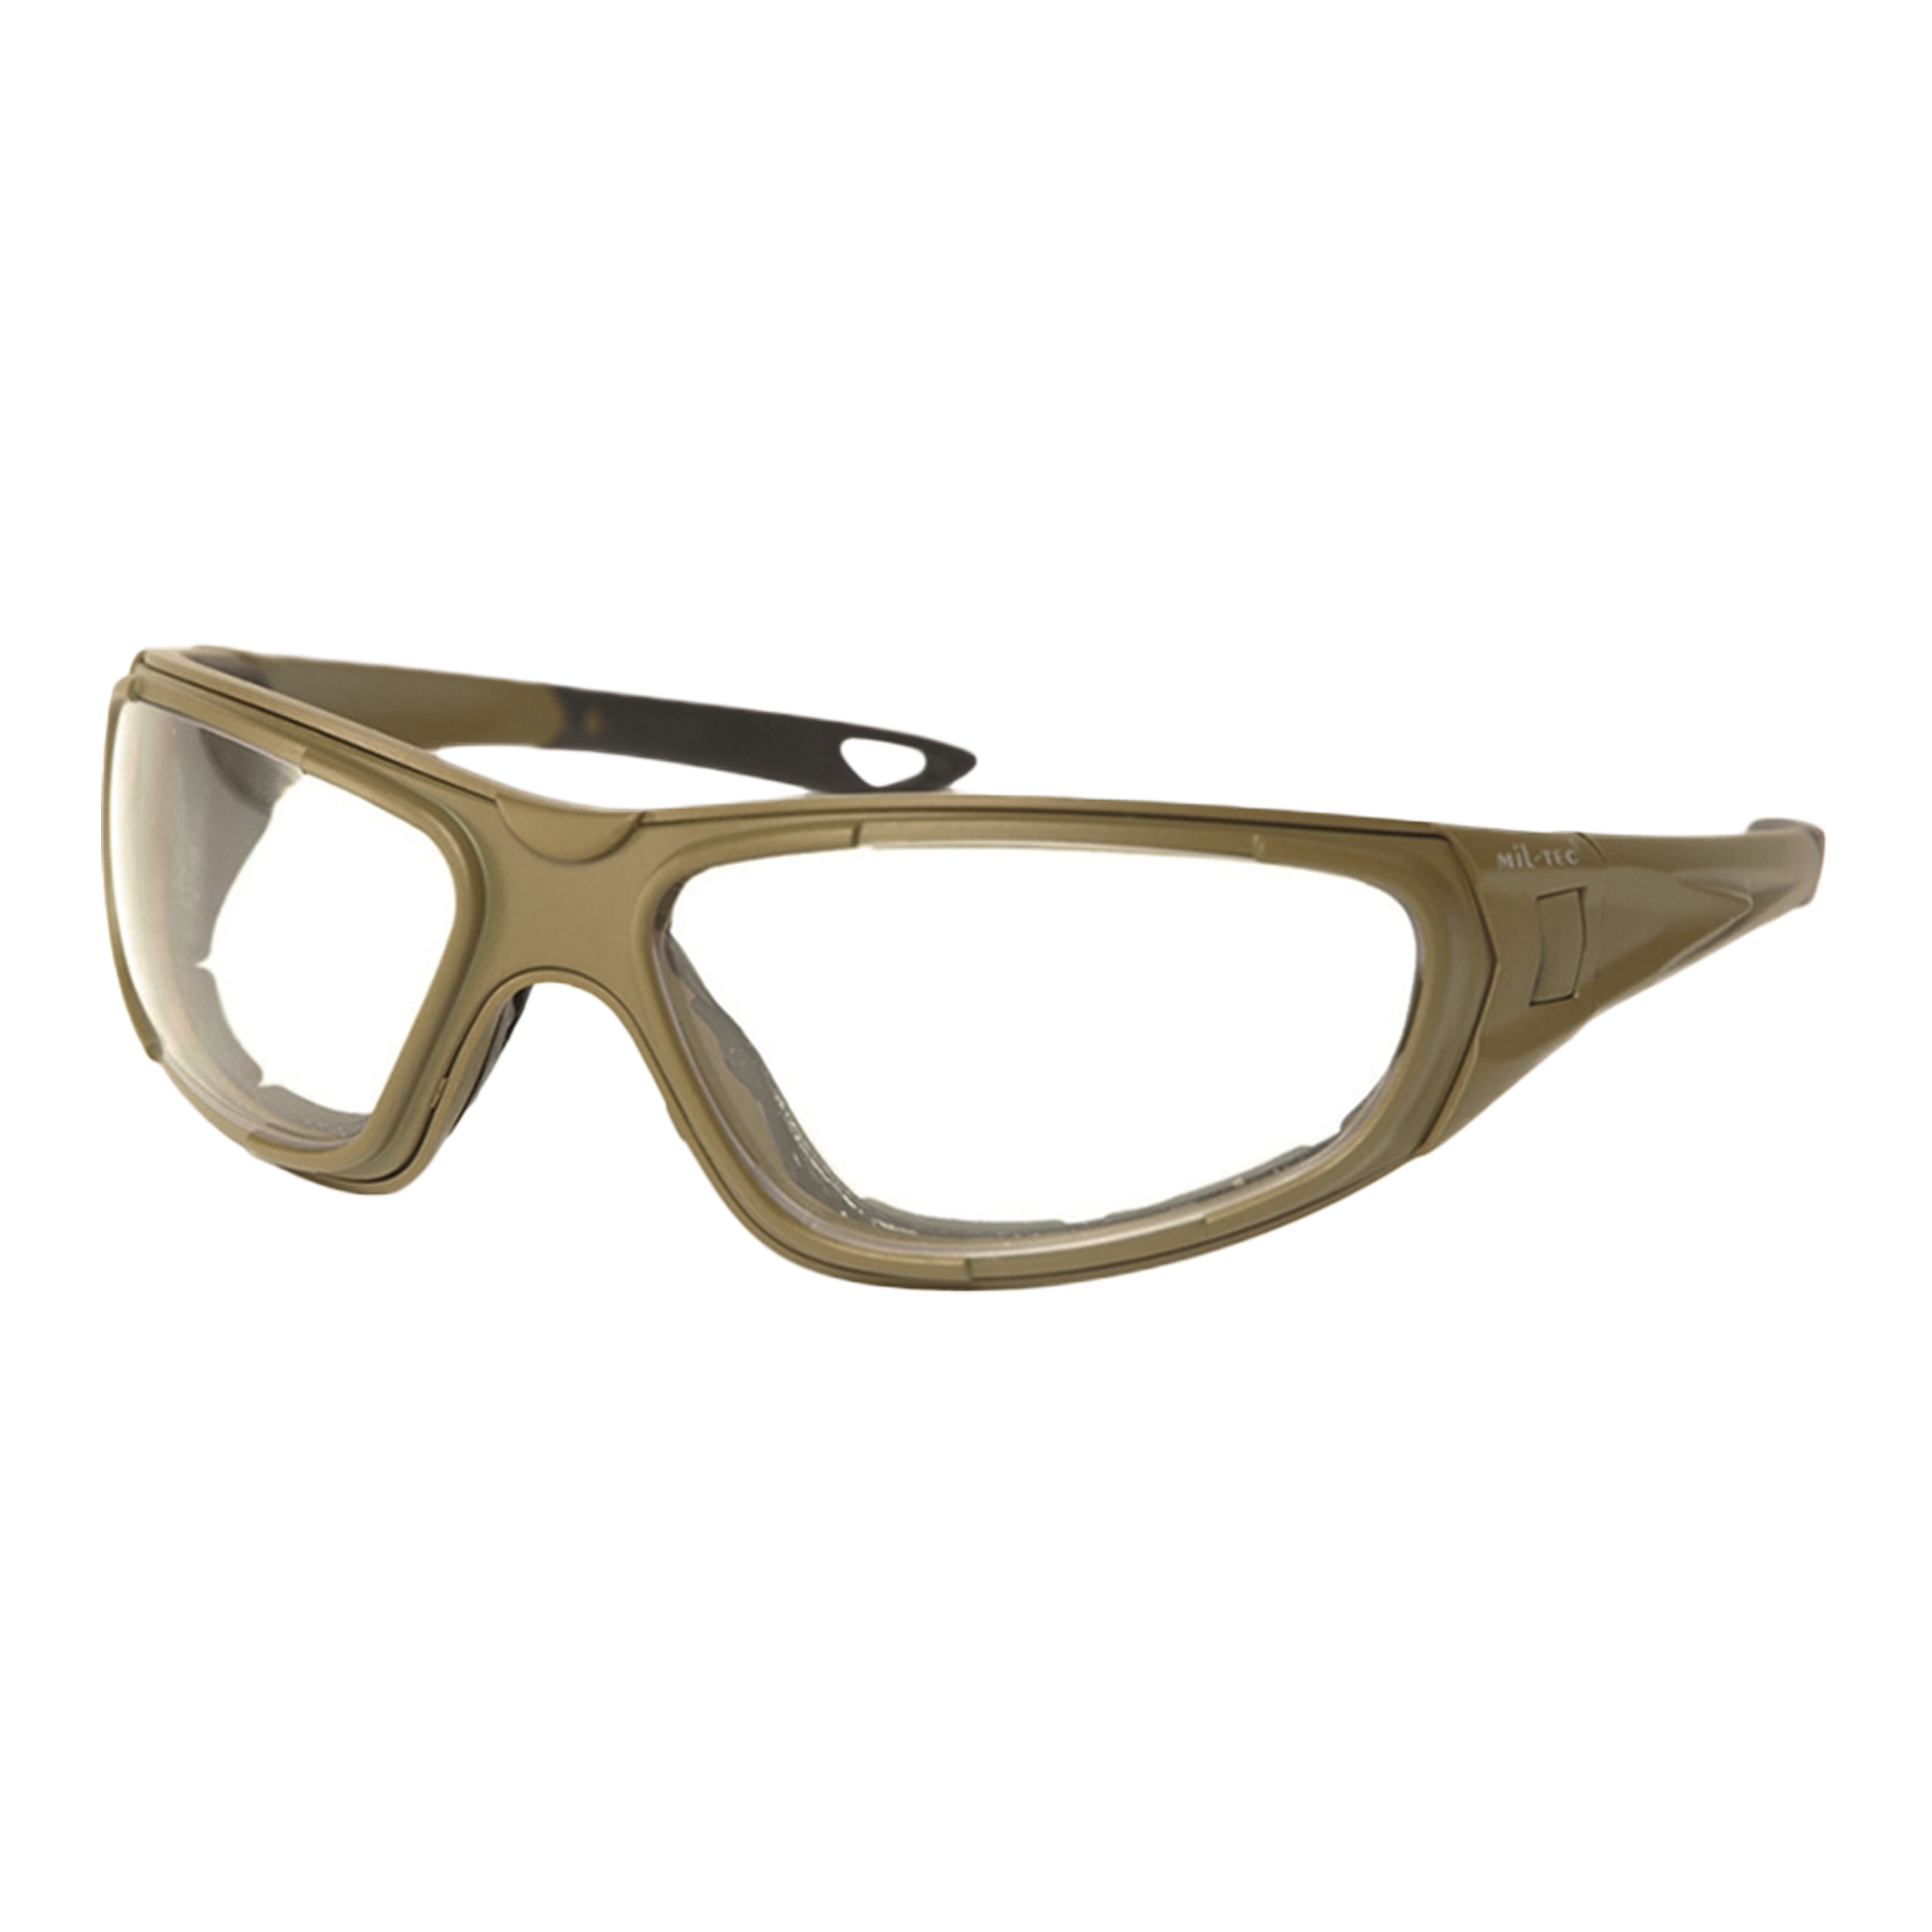 Brille Tactical Goggle 3in1 coyote